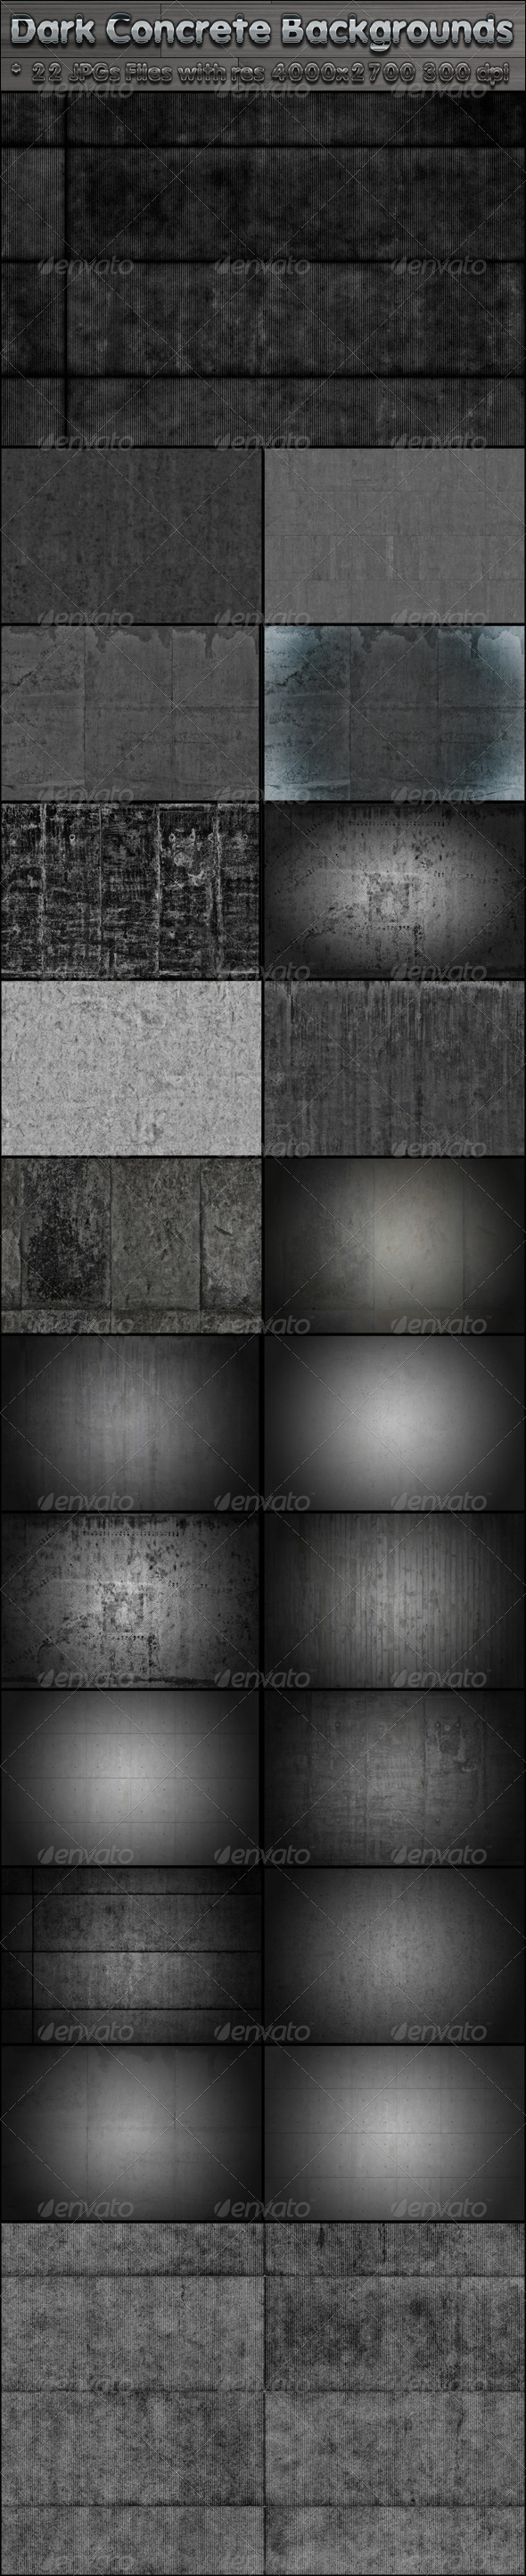 Dark Concrete Backgrounds - Miscellaneous Backgrounds